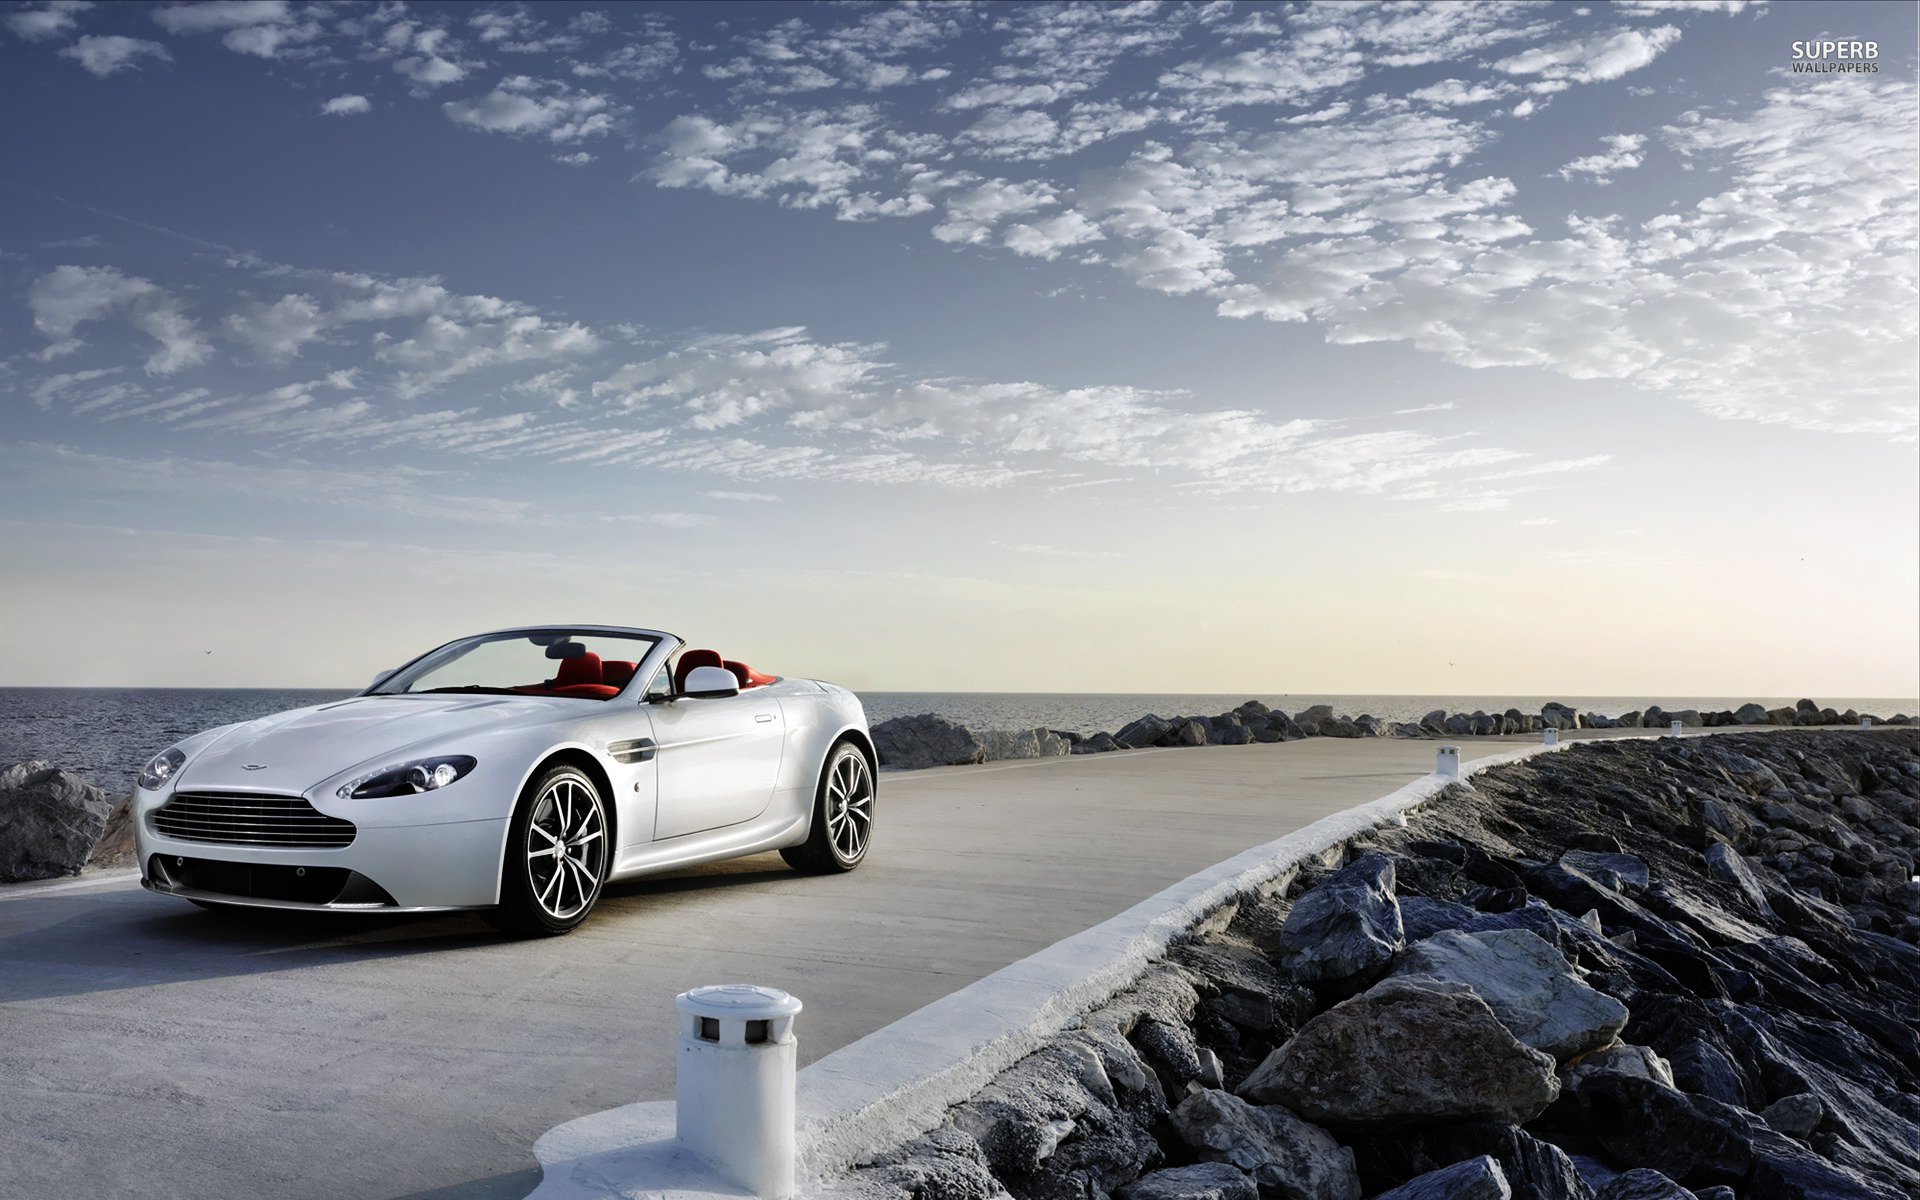 Awesome Aston Martin Dbs V12 Wallpaper Full Hd Pictures